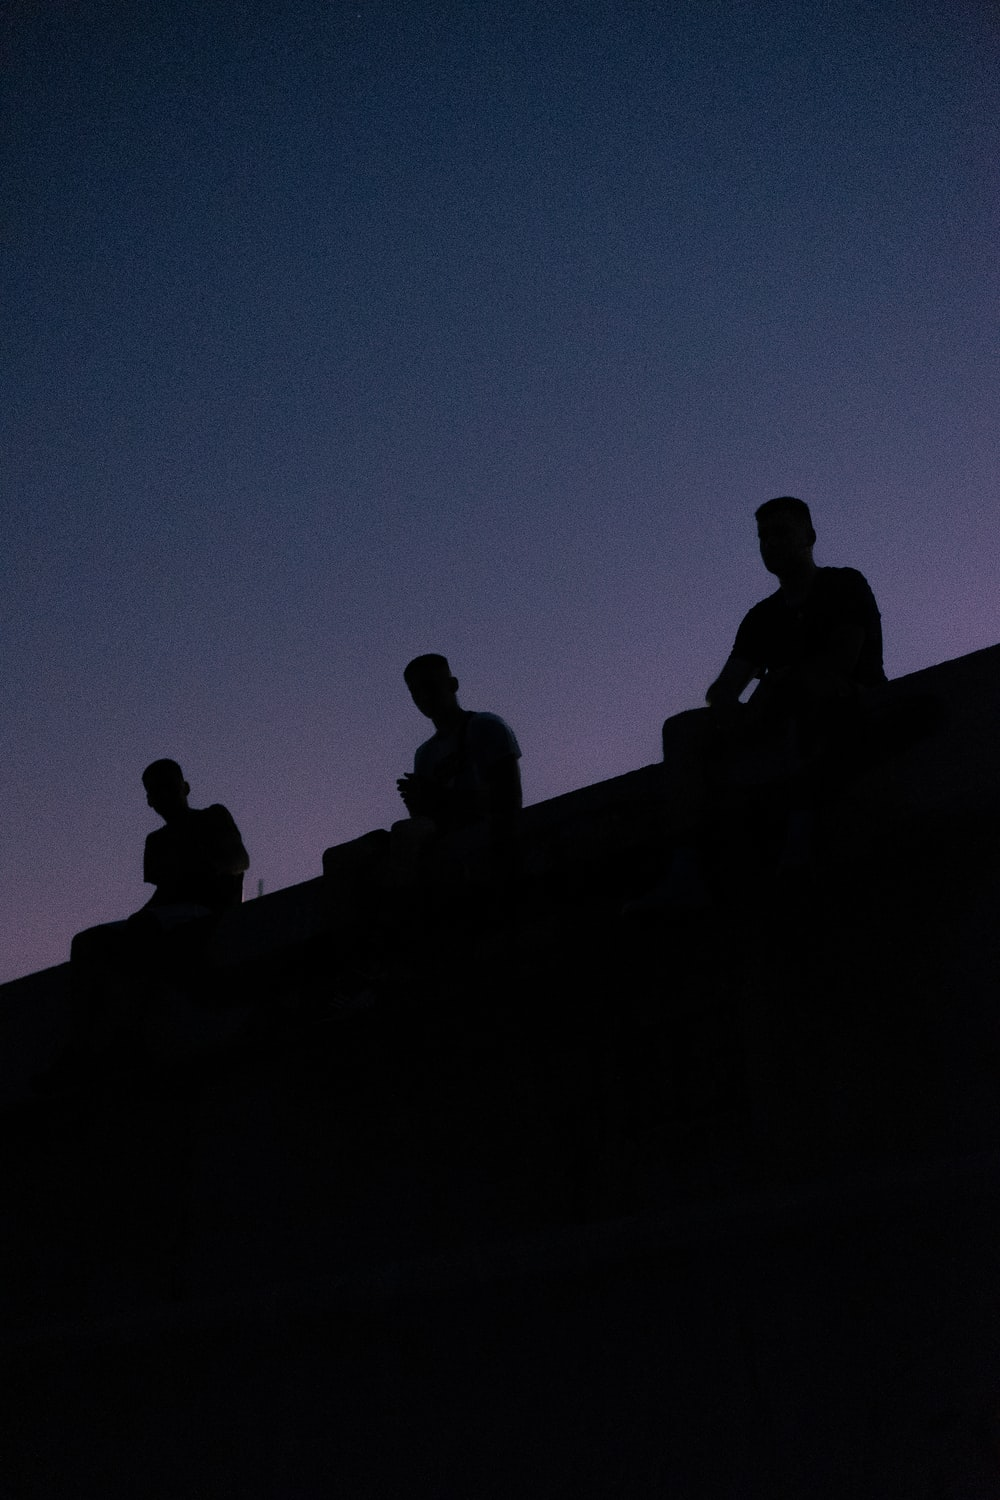 silhouette view of three men sitting on the roof